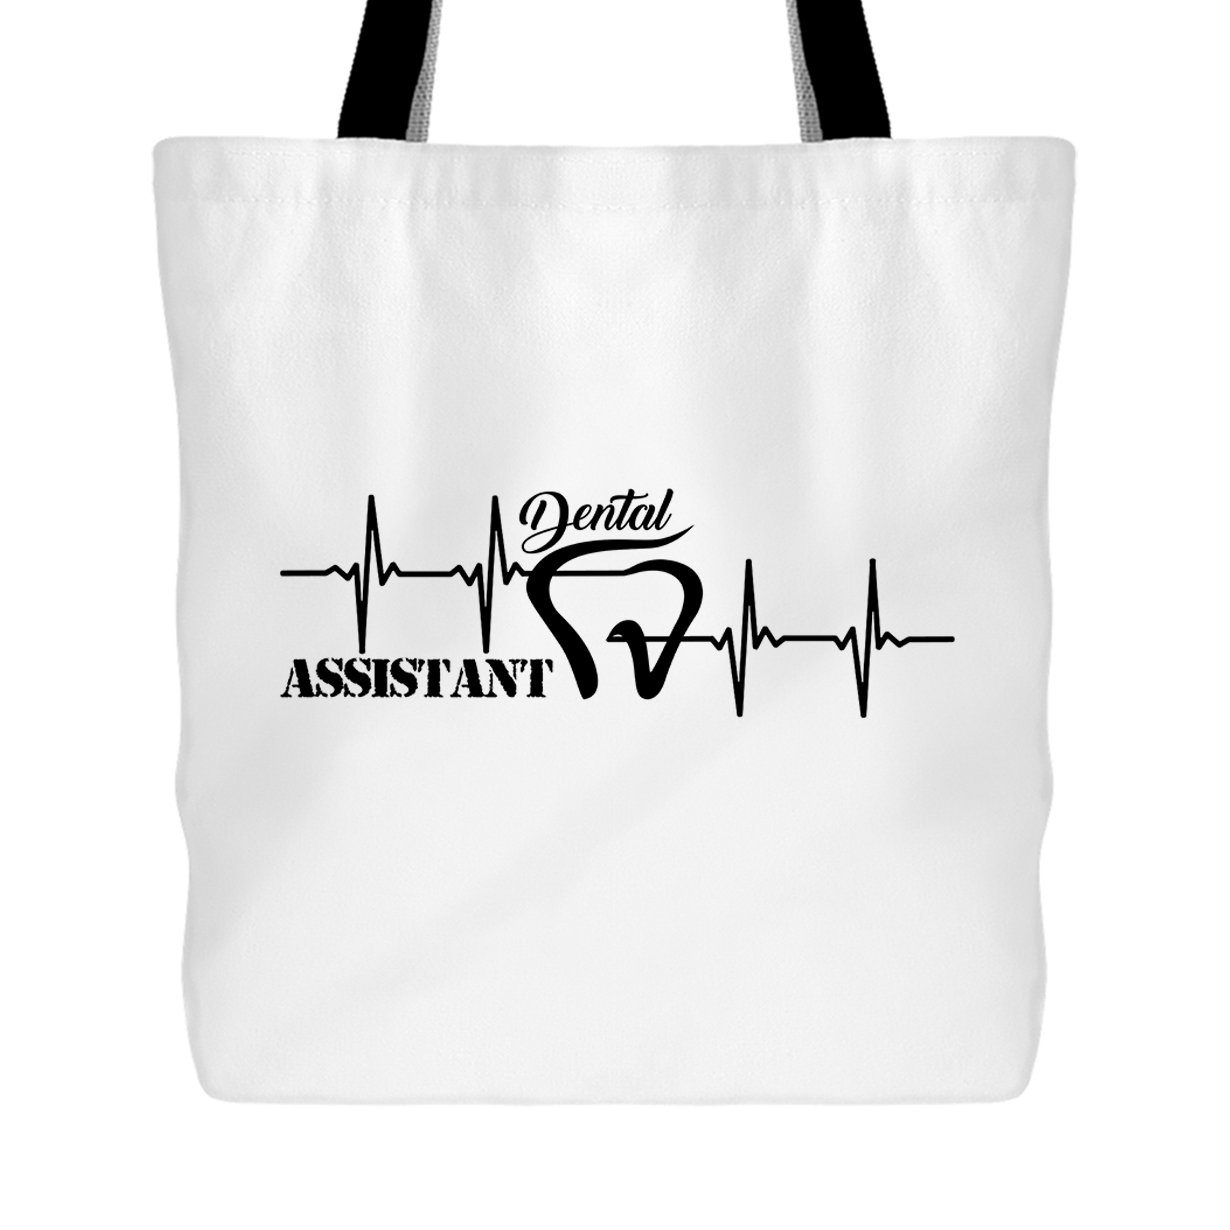 Dental Assistant Tote Bag - Dental Assistant Heartbeat Handbags EZARO ERGAB-EZR1132-WBG